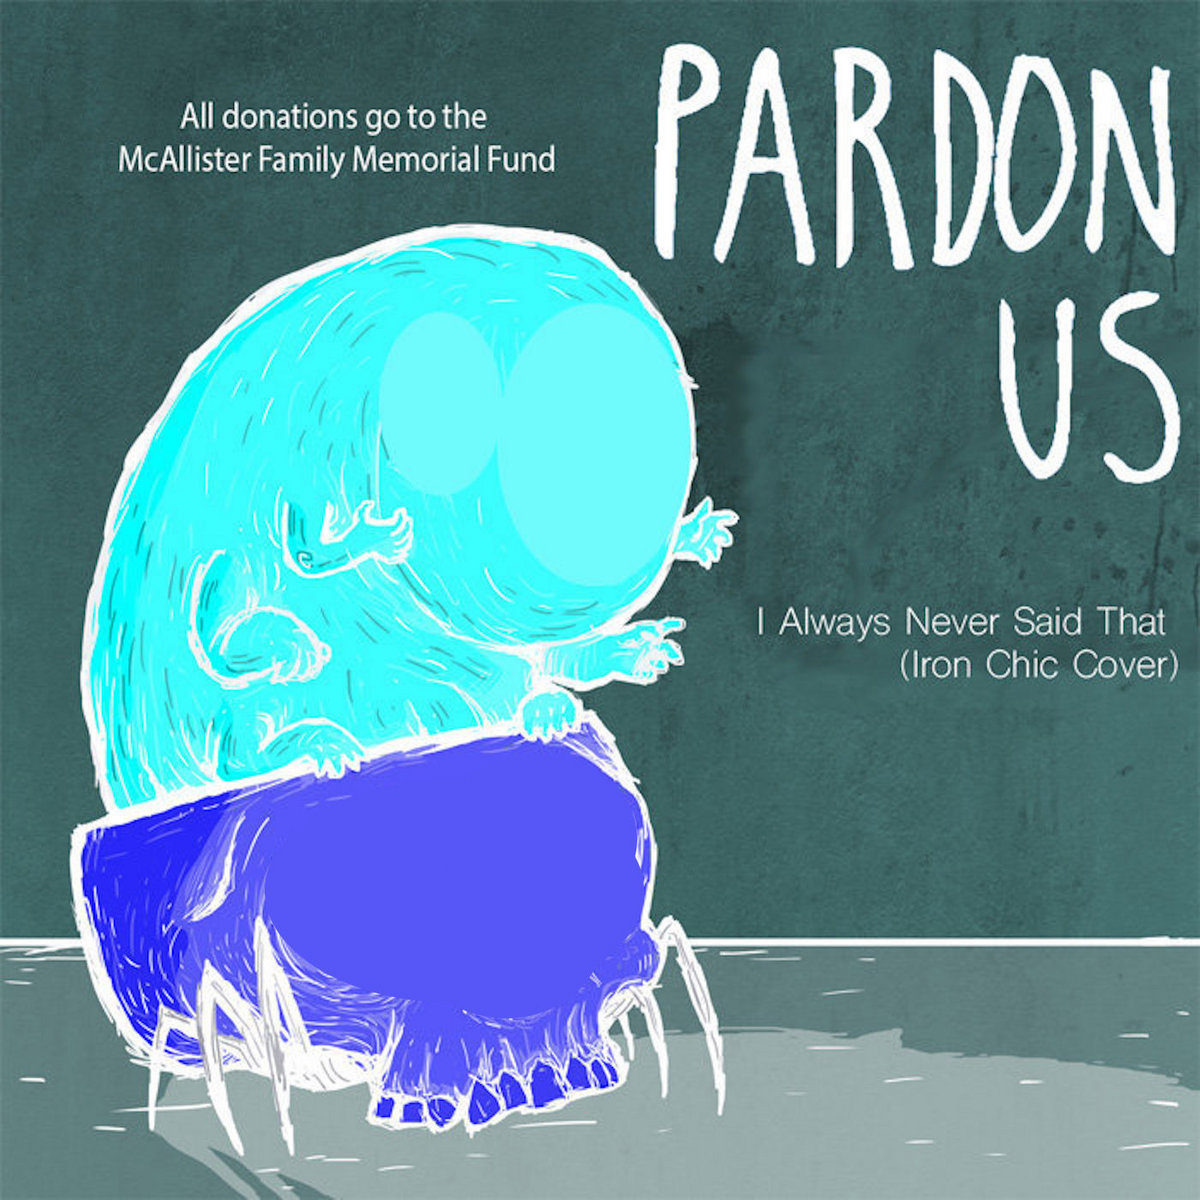 I always never said that (Iron Chic Cover) by Pardon Us